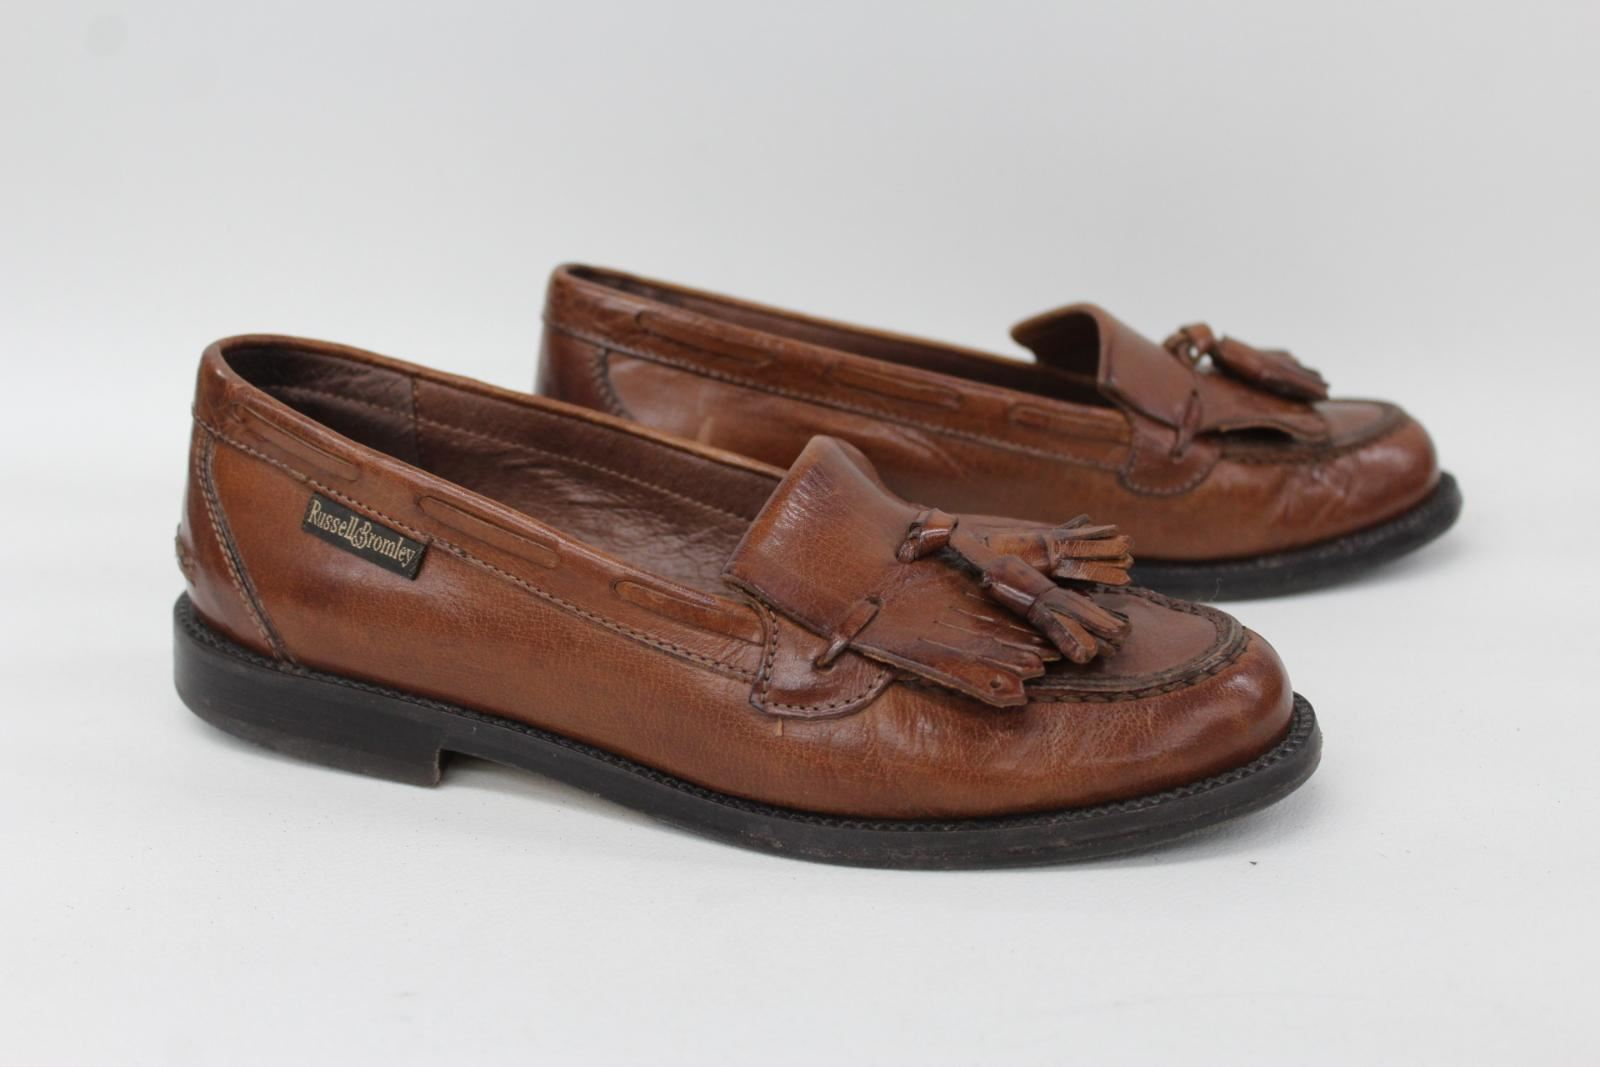 RUSSELL-amp-BROMLEY-Ladies-Brown-Leather-Kiltie-Slip-On-Loafer-Shoes-UK3-EU36